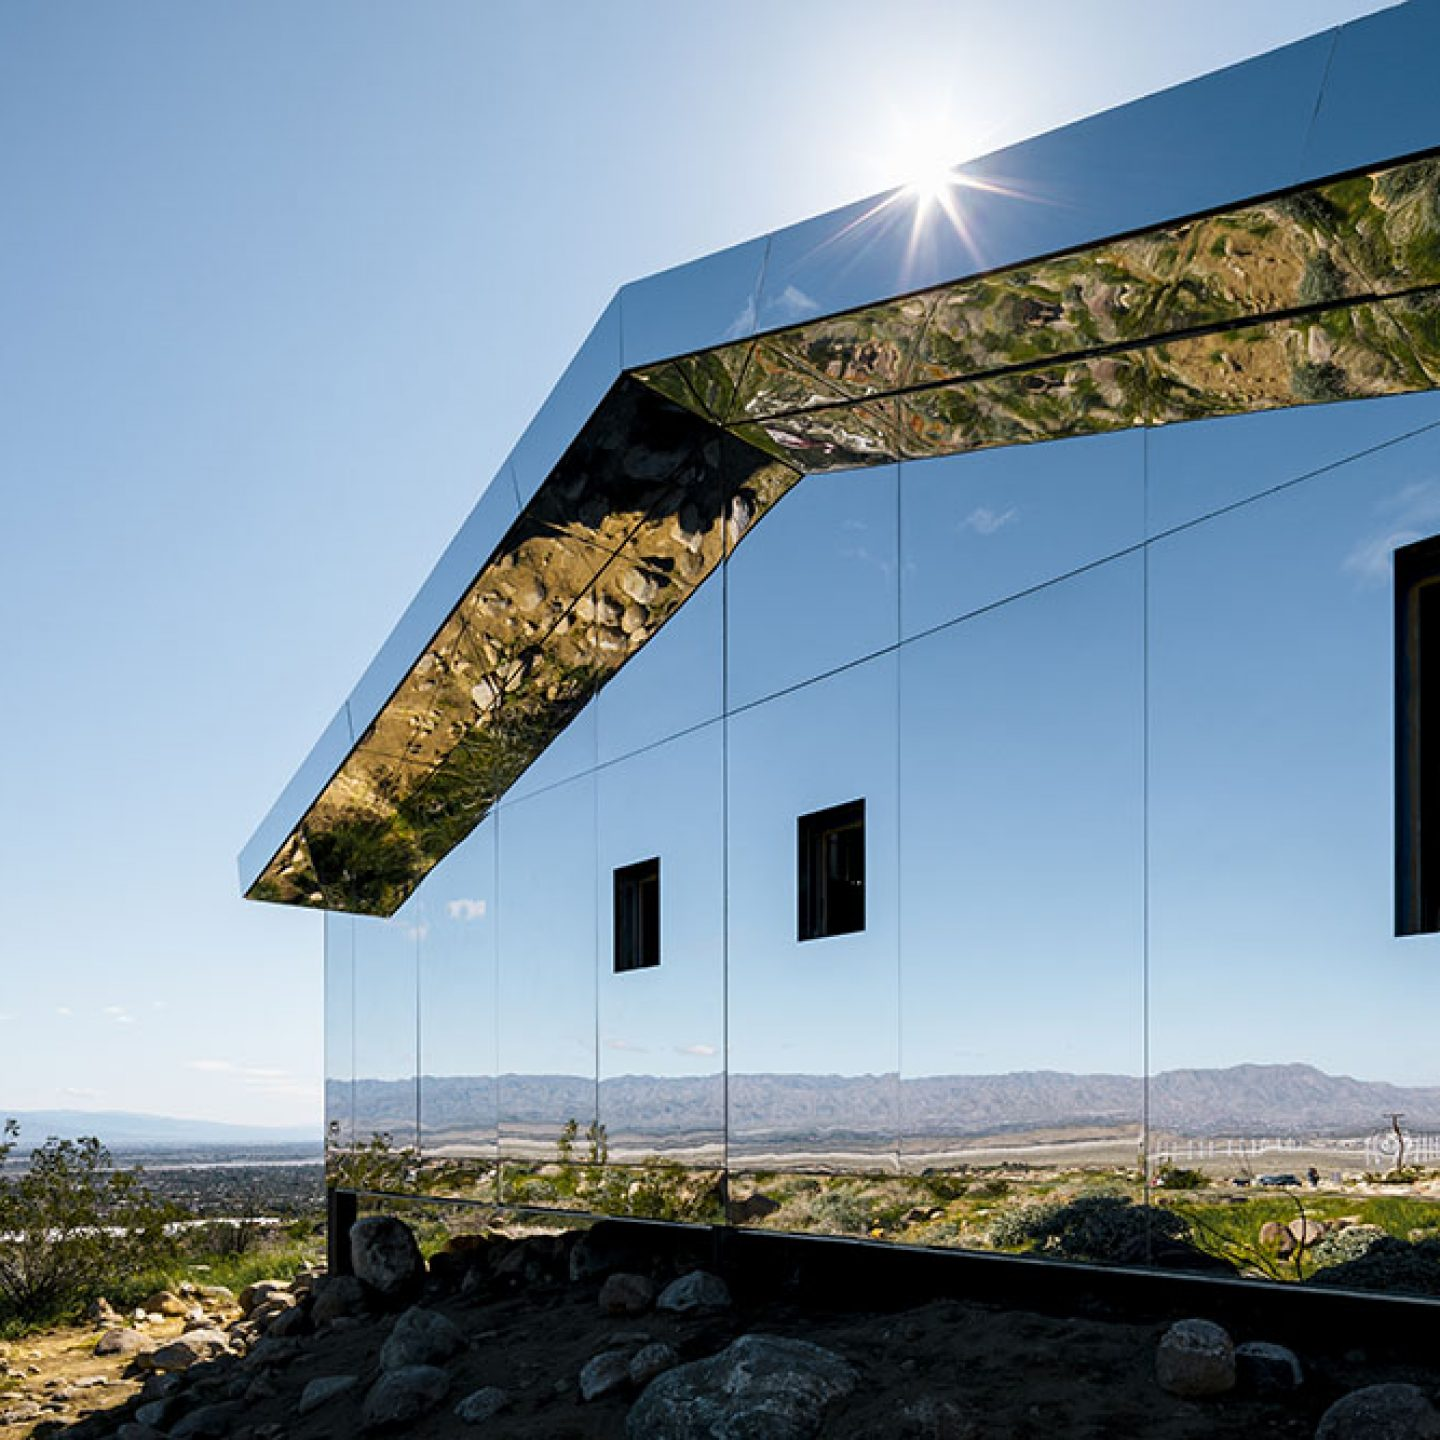 Art_Doug_Aitken_Mirrored_Mirage_8